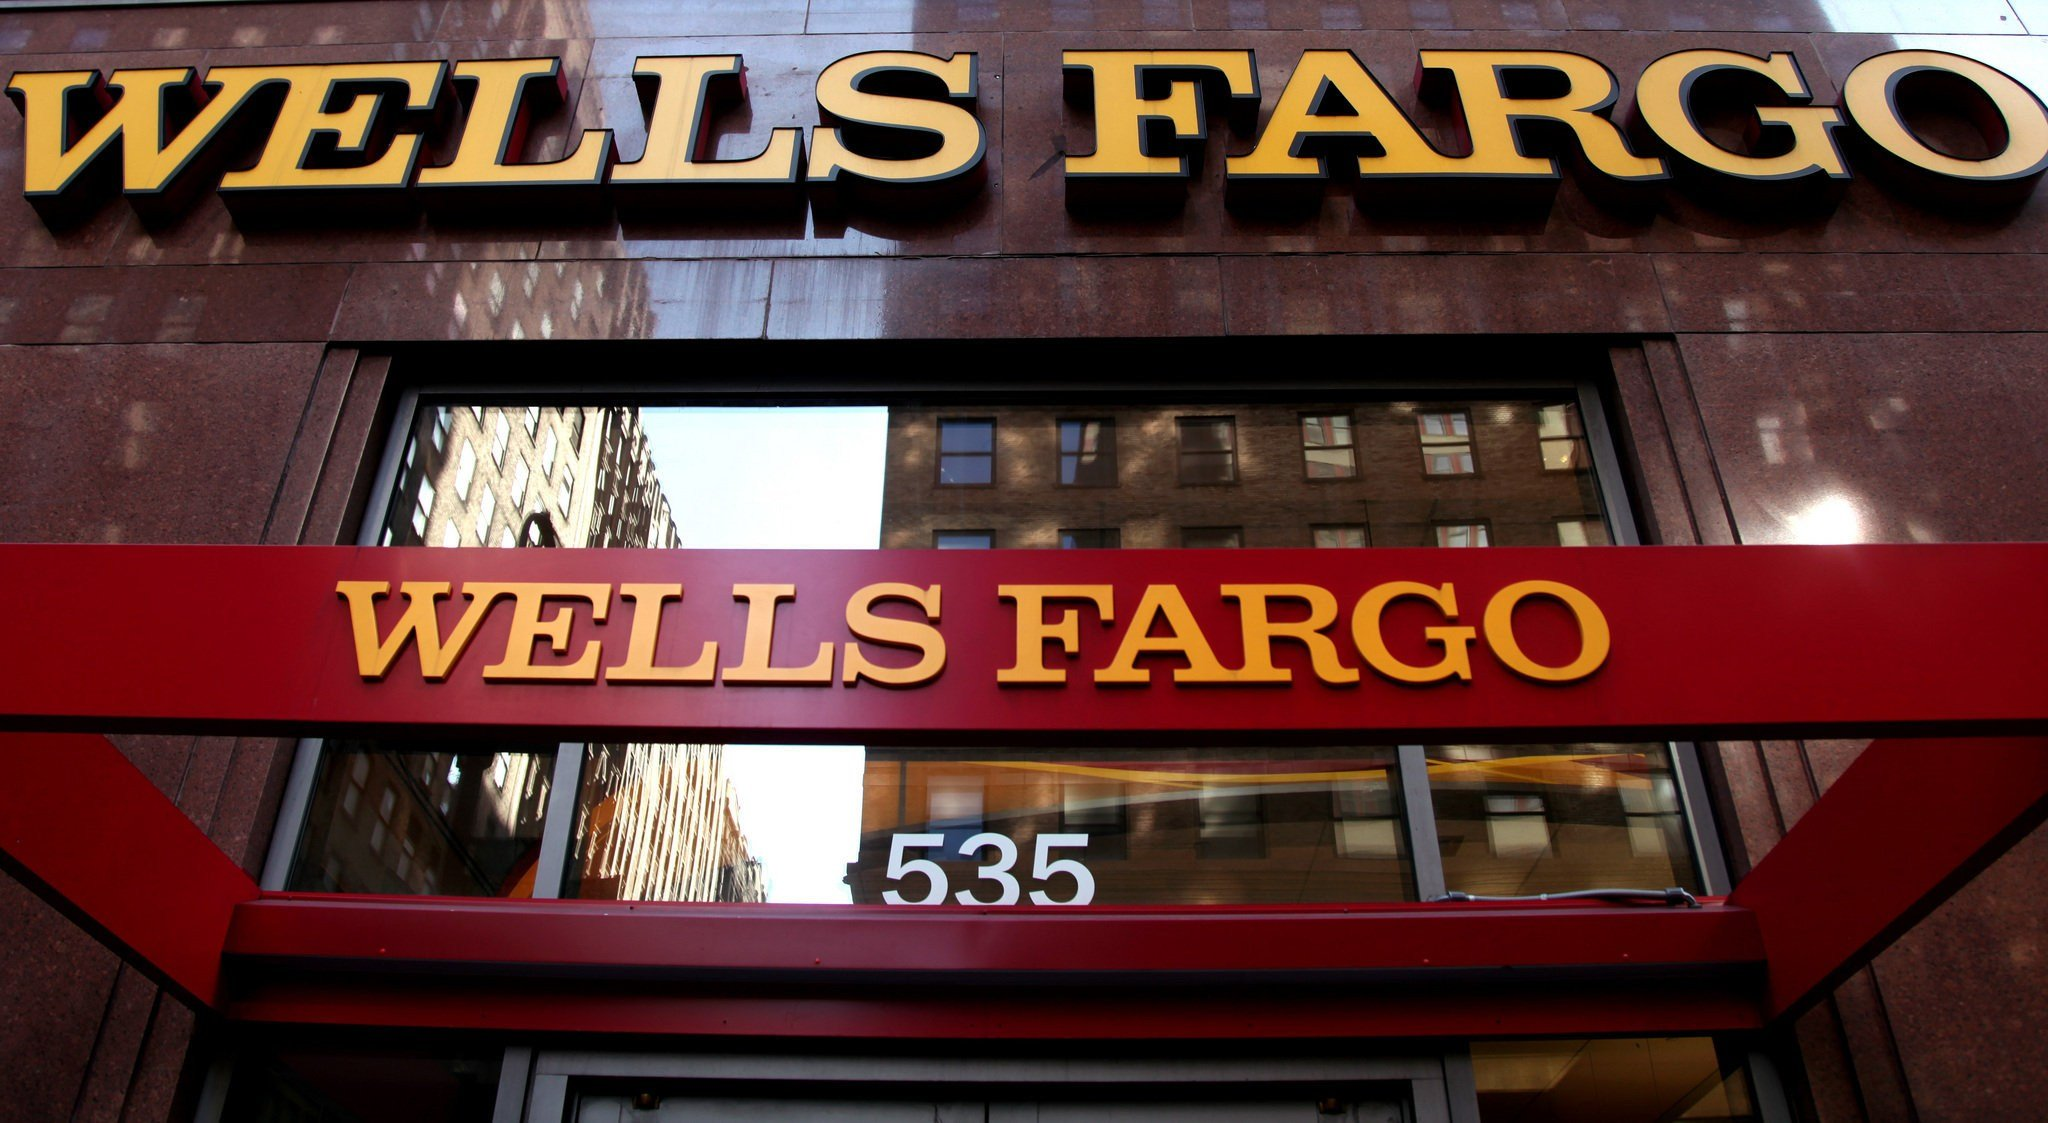 May 6, 2012, file photo: A Wells Fargo sign is displayed at a branch in New York. (AP Photo/CX Matiash, File)